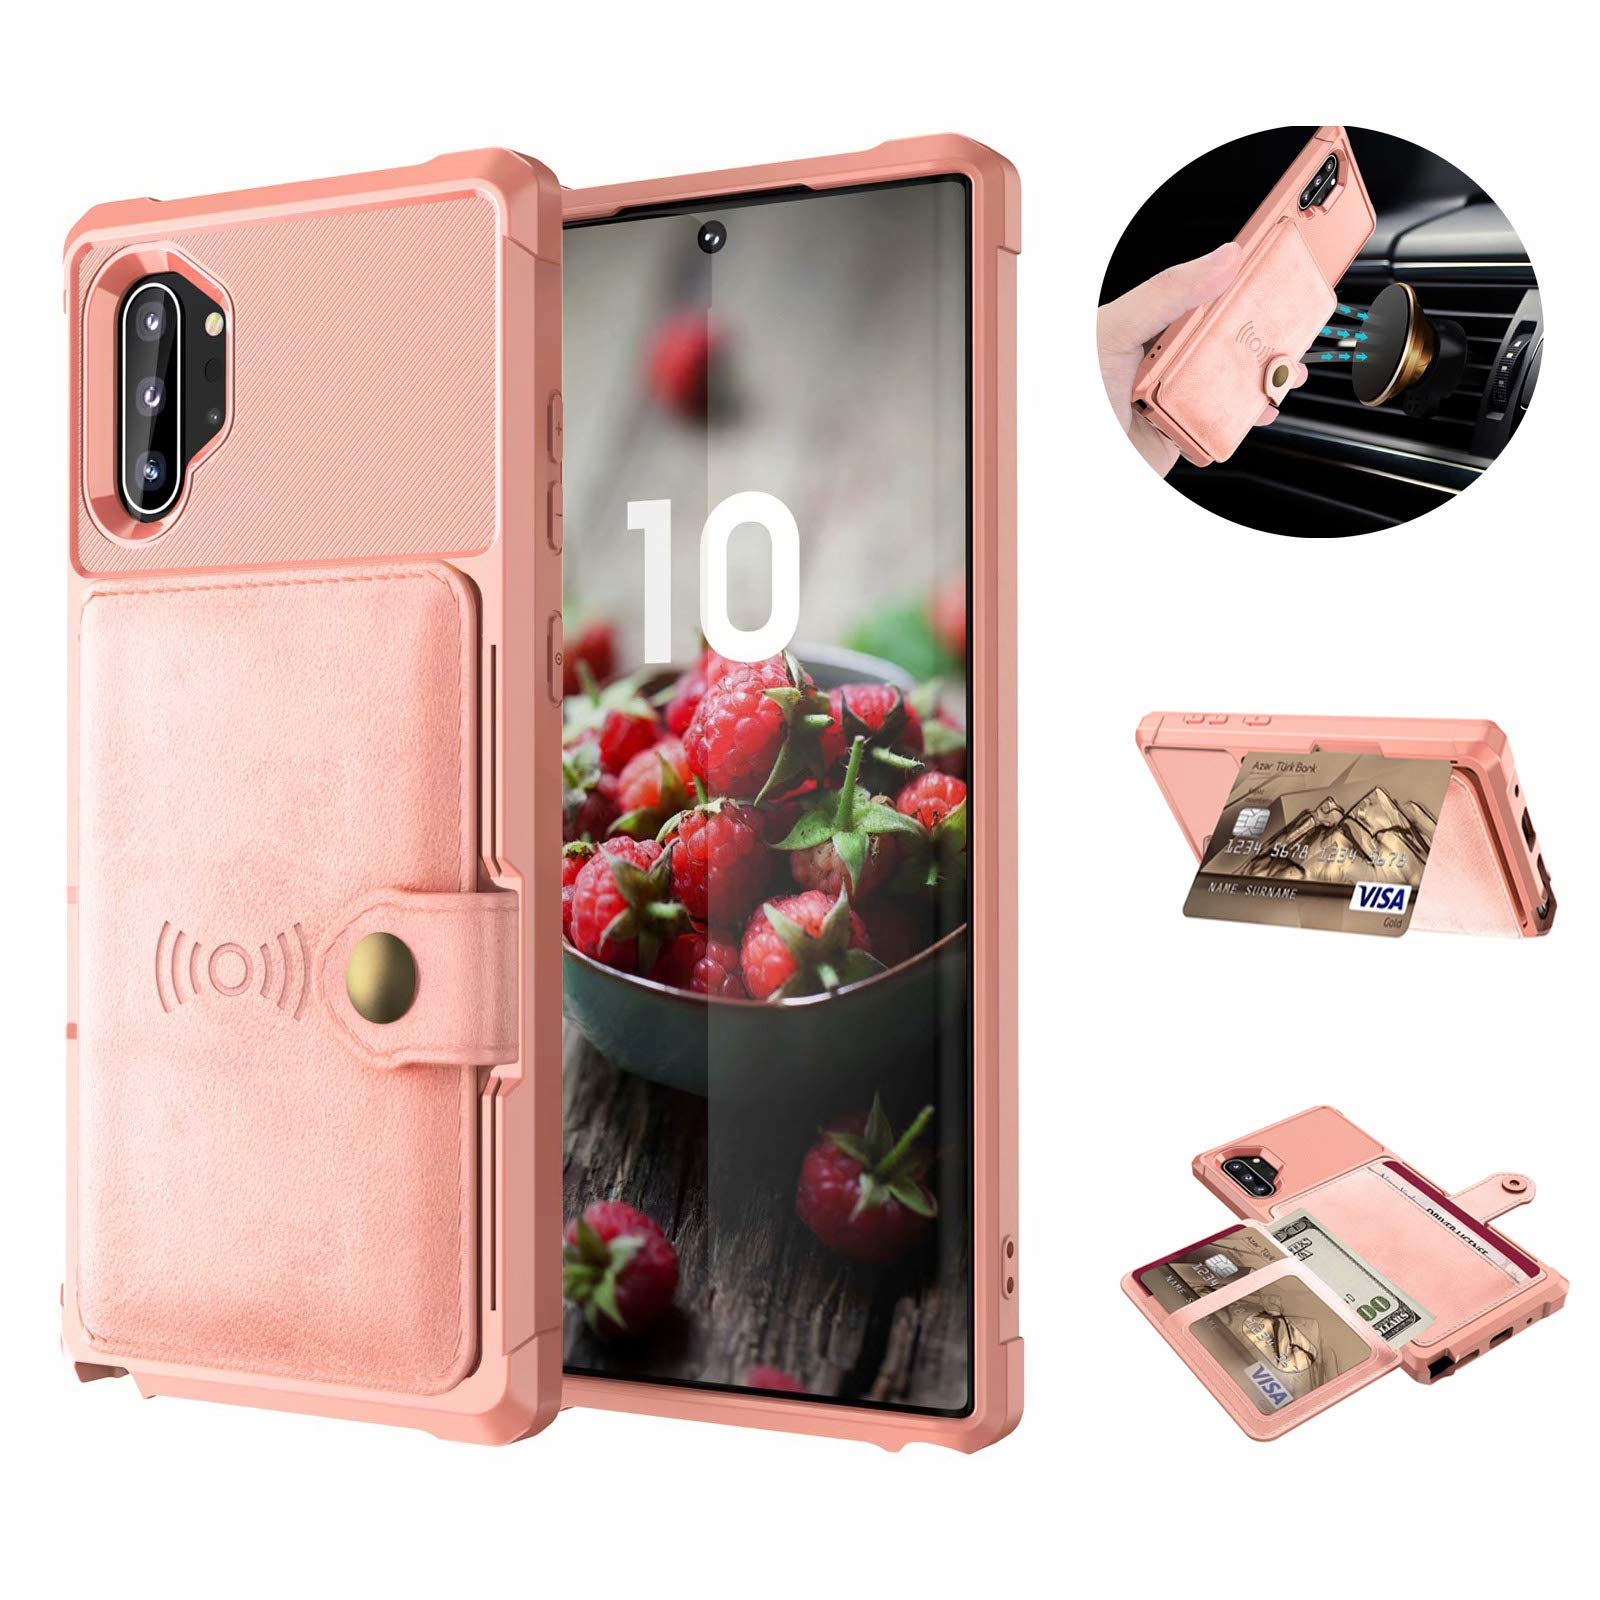 Tznzxm Galaxy Note 10 Plus Wireless Charging Case Credit Card Kickstand Rubber Buttons [Work with Magnetic Car Mount] Durable Flip Shockproof Protective Cover for Samsung Galaxy Note 10 Plus Pink by Tznzxm